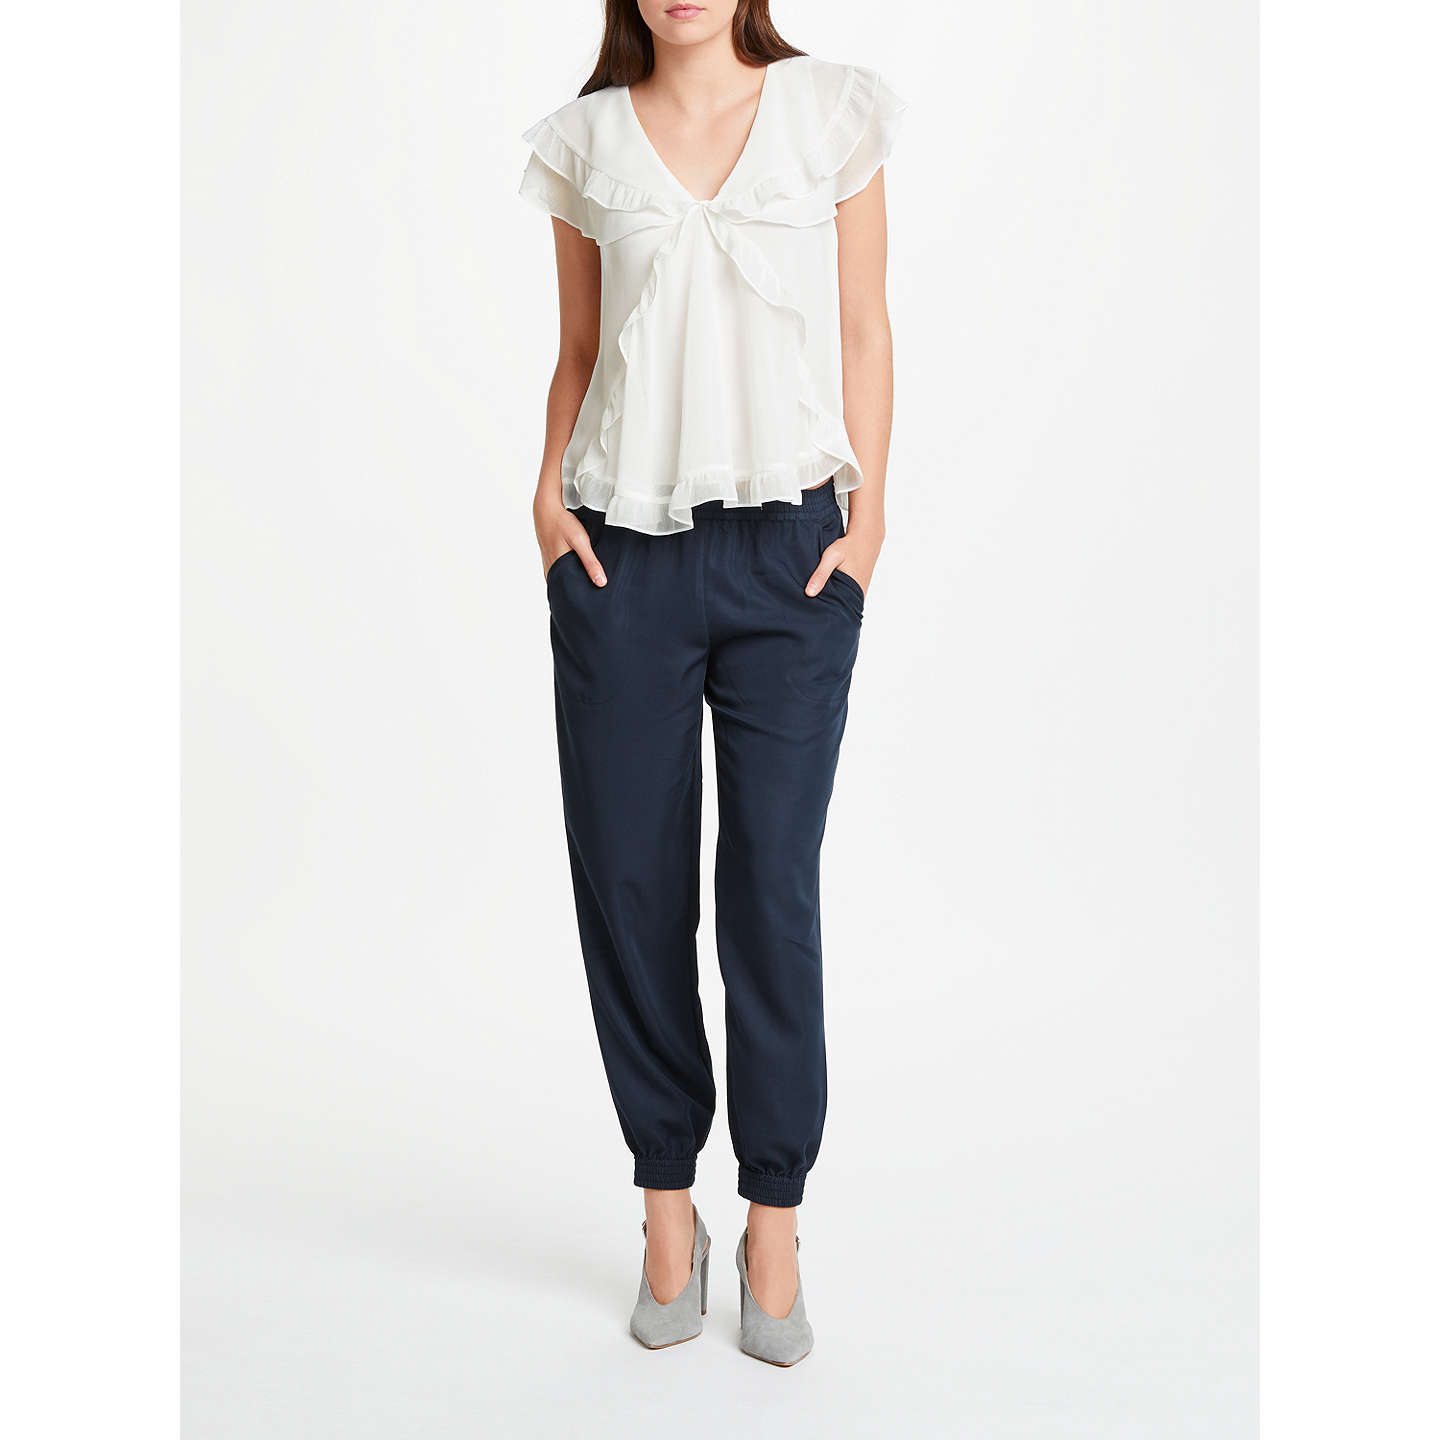 BuyMax Studio Frill Detail Blouse, White, XS Online at johnlewis.com